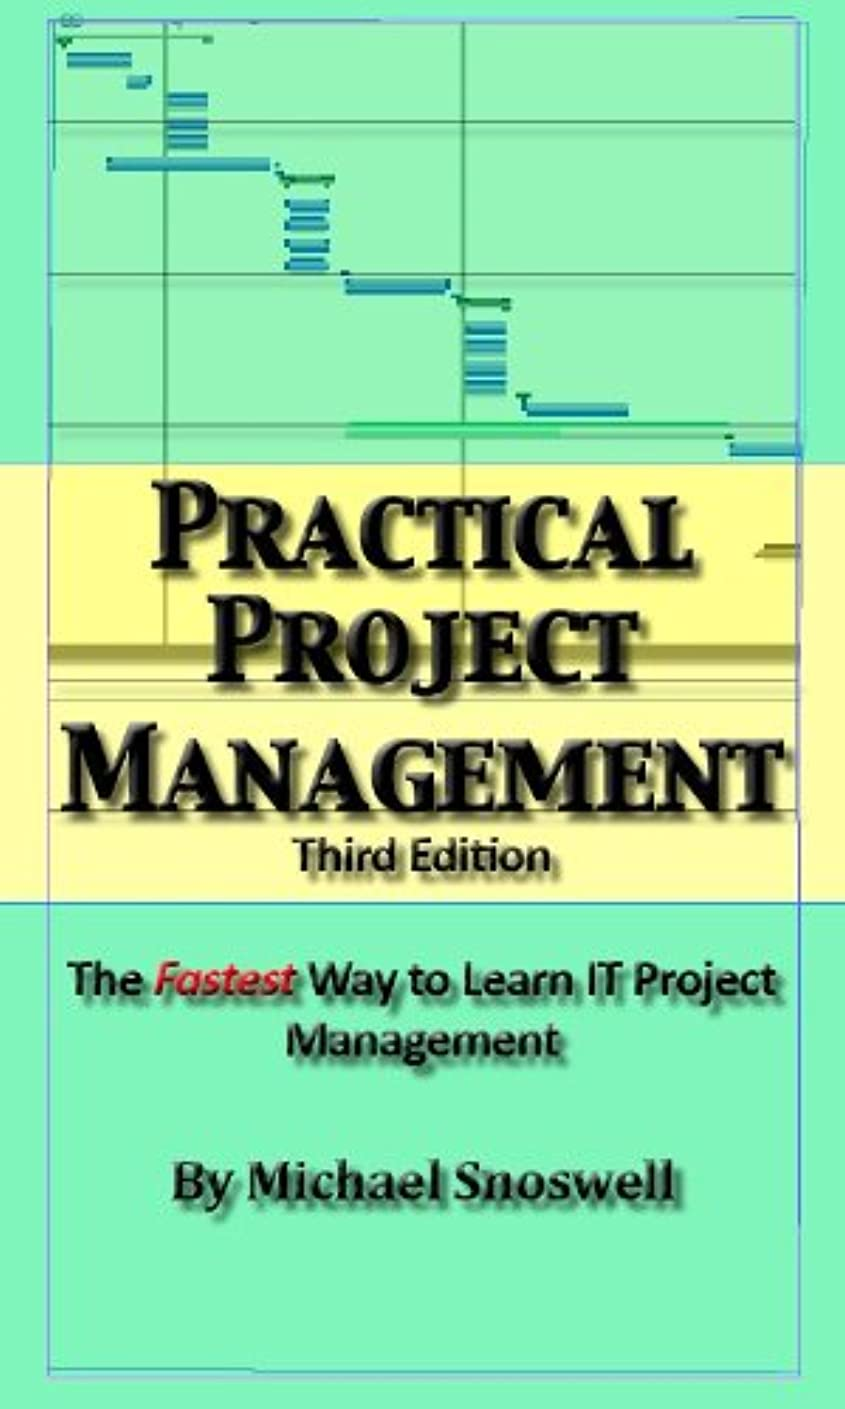 Practical Project Management: Simple Tips You Wish You Knew About Project Management (English Edition)